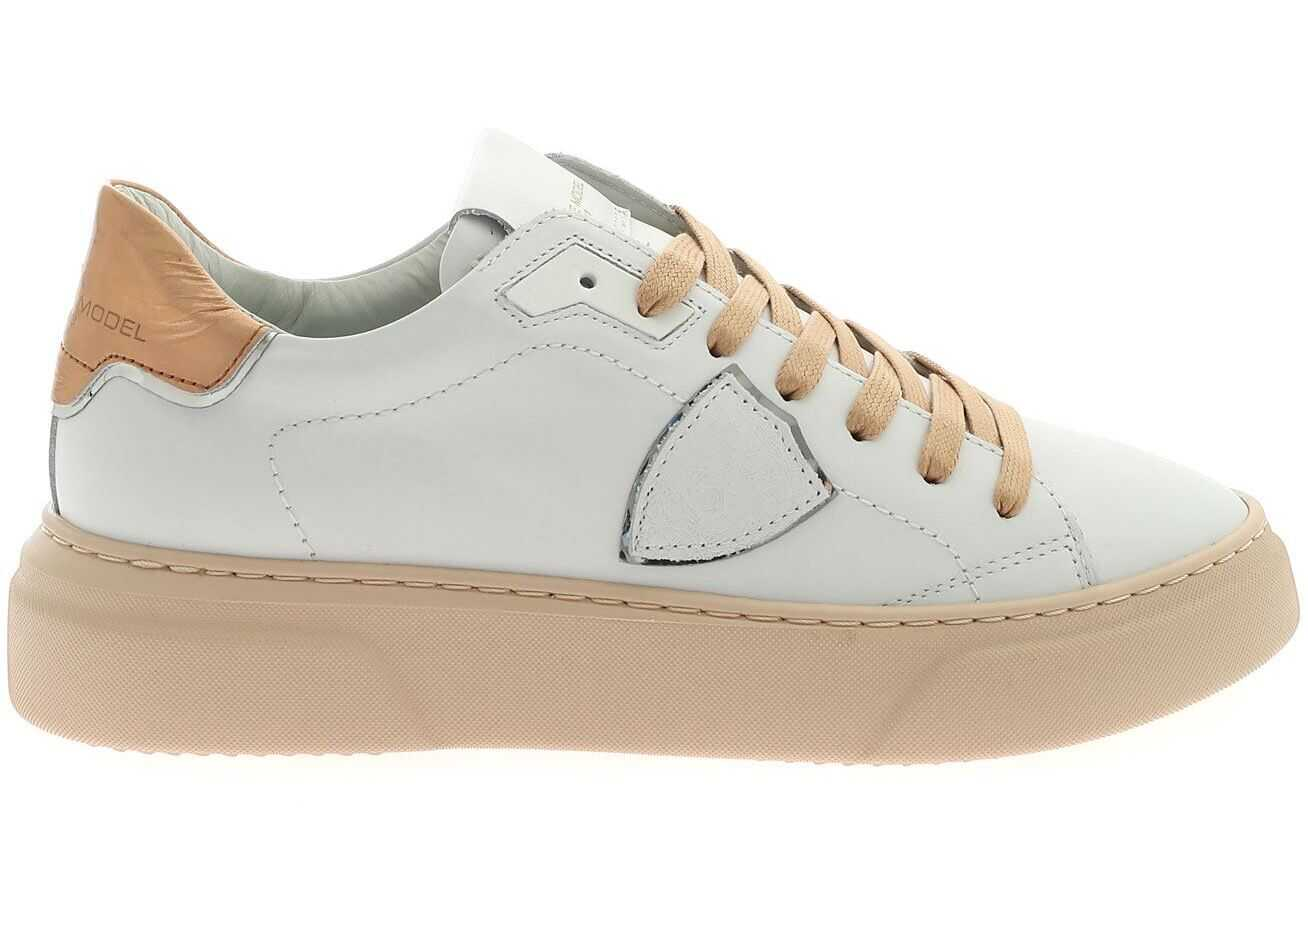 Philippe Model Temple S Sneakers In White And Pink White